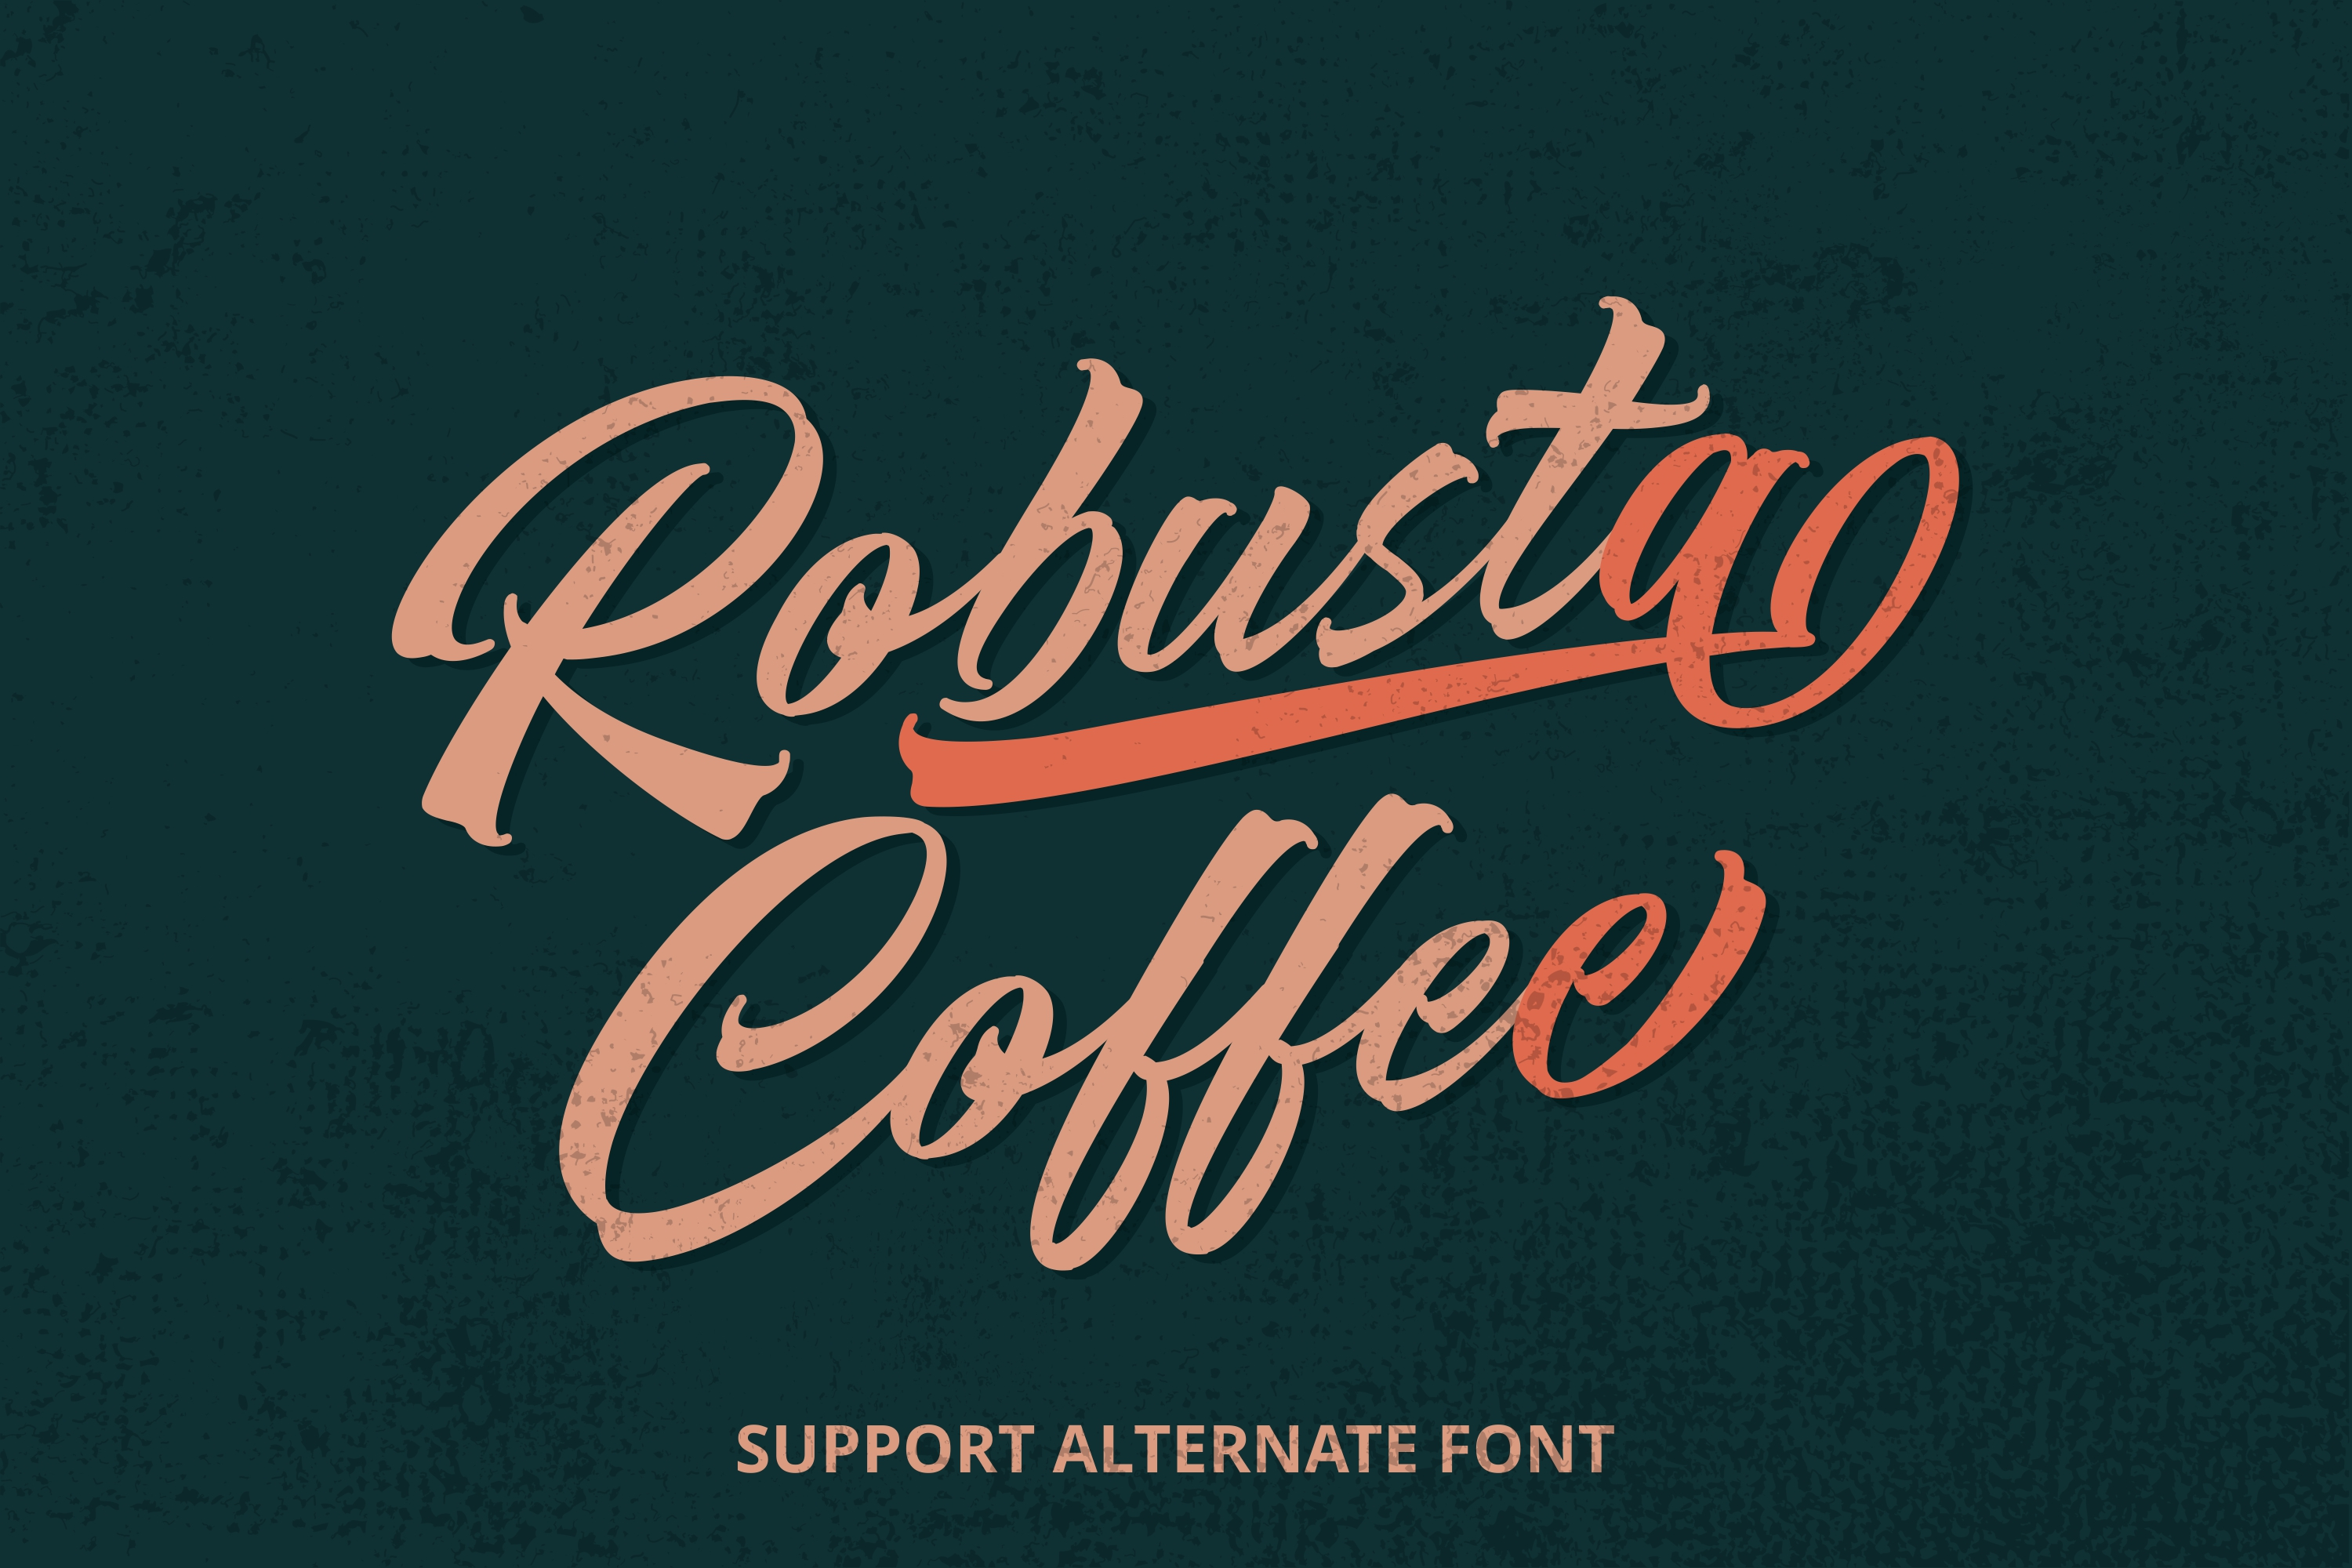 Backend Script Font example image 4